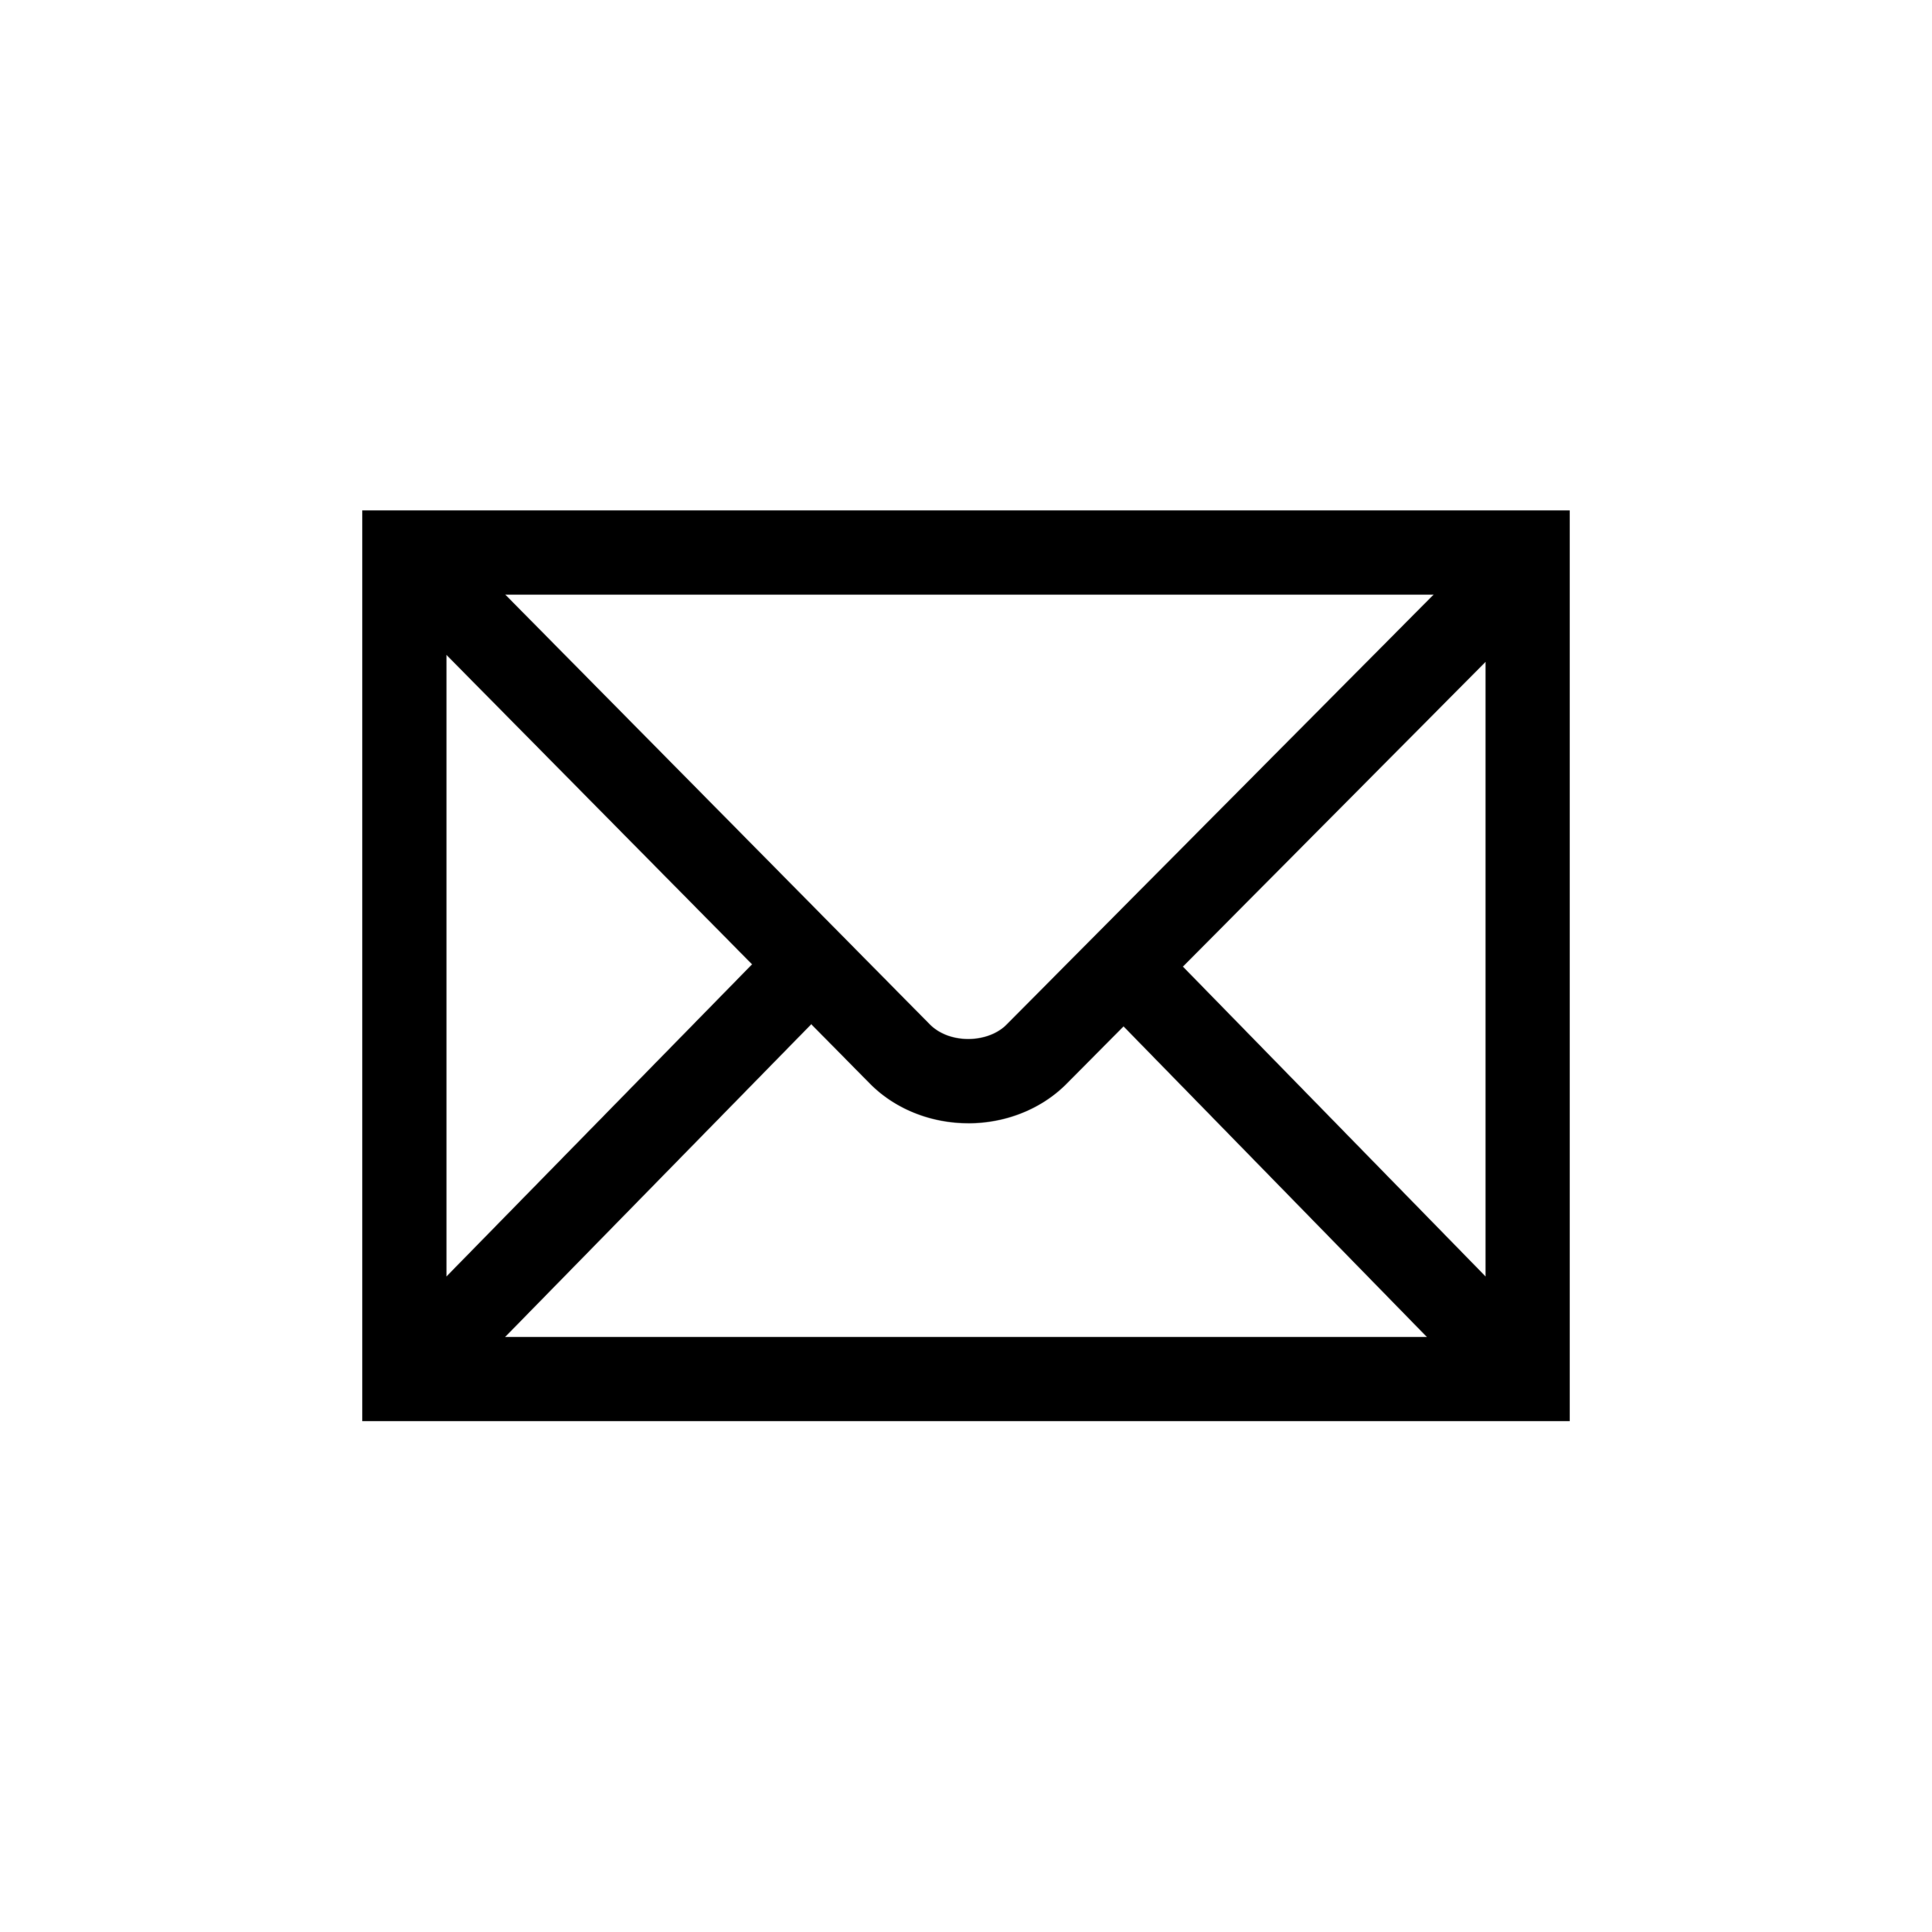 email-icon-black.png